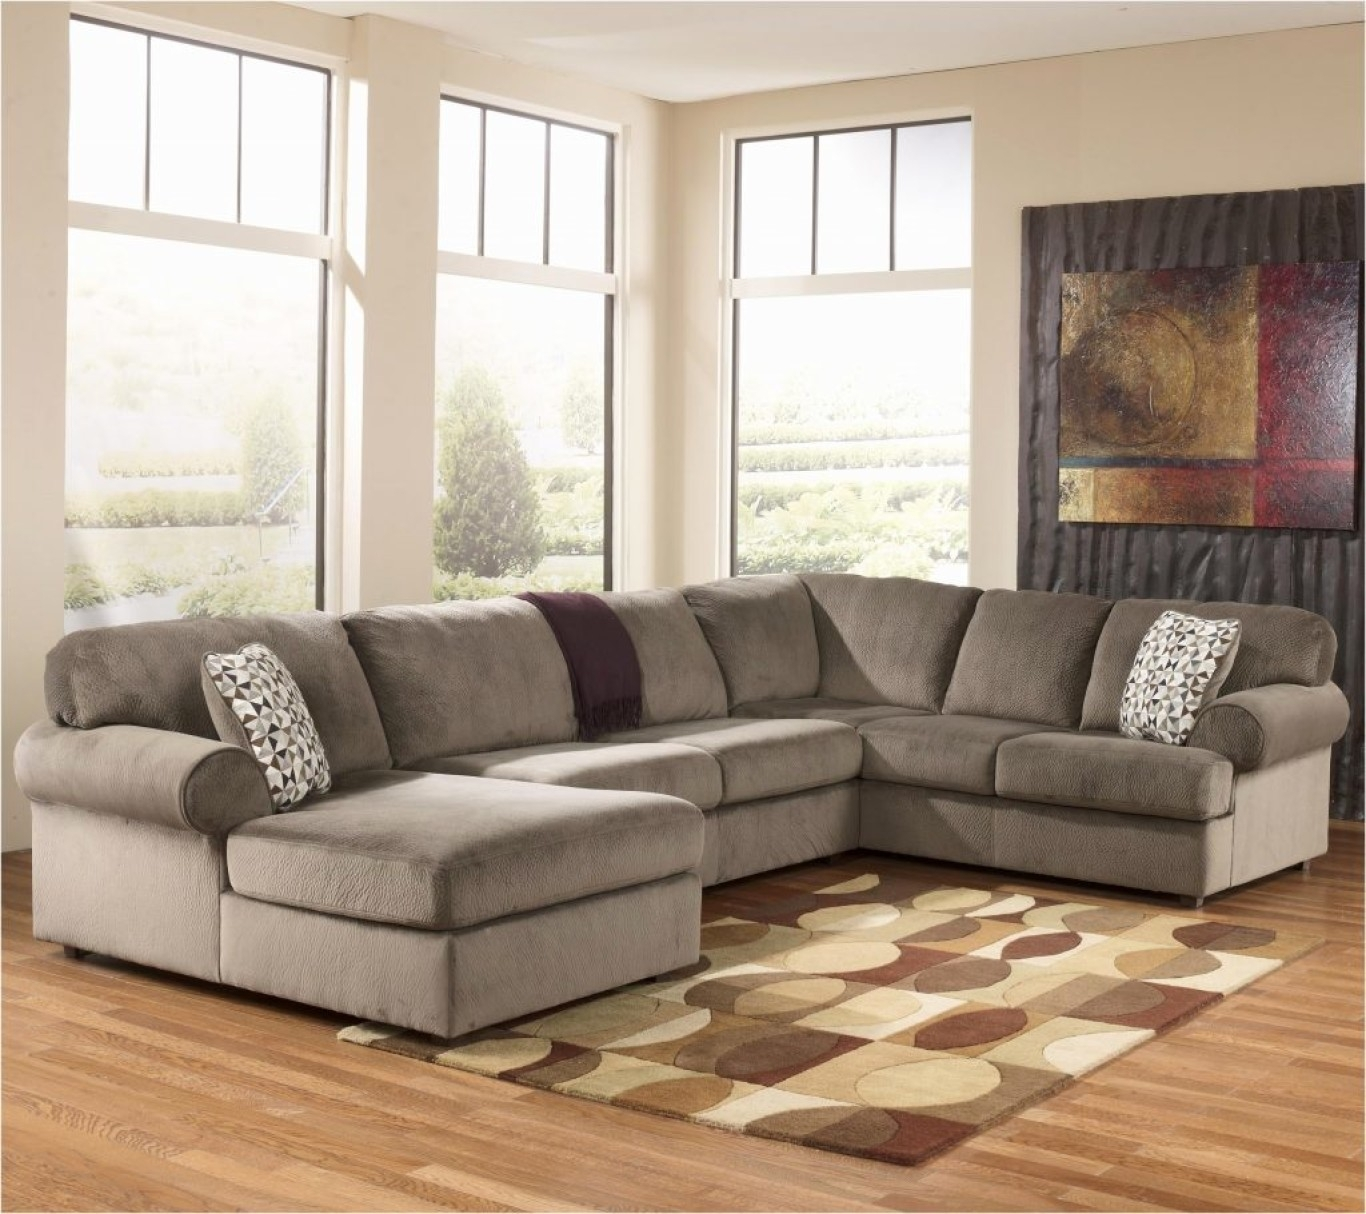 Craigslist Duluth Furniture Pertaining To Duluth Mn Sectional Sofas (Image 1 of 10)